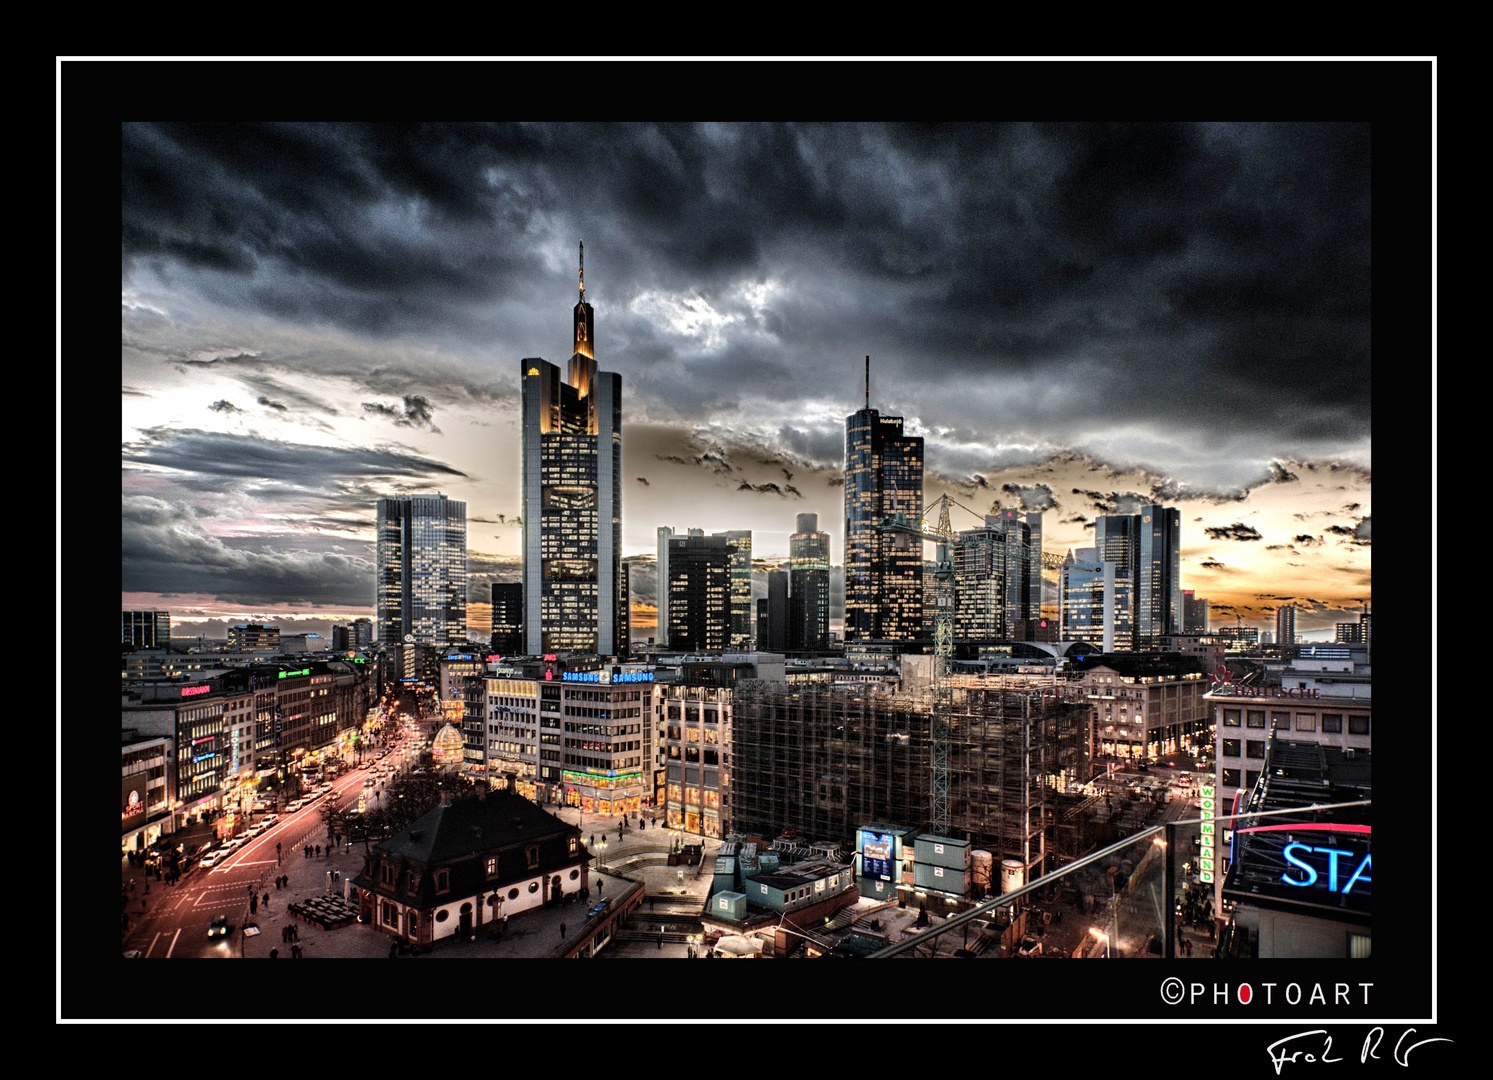 Gotham City, Batman's Heimatstadt